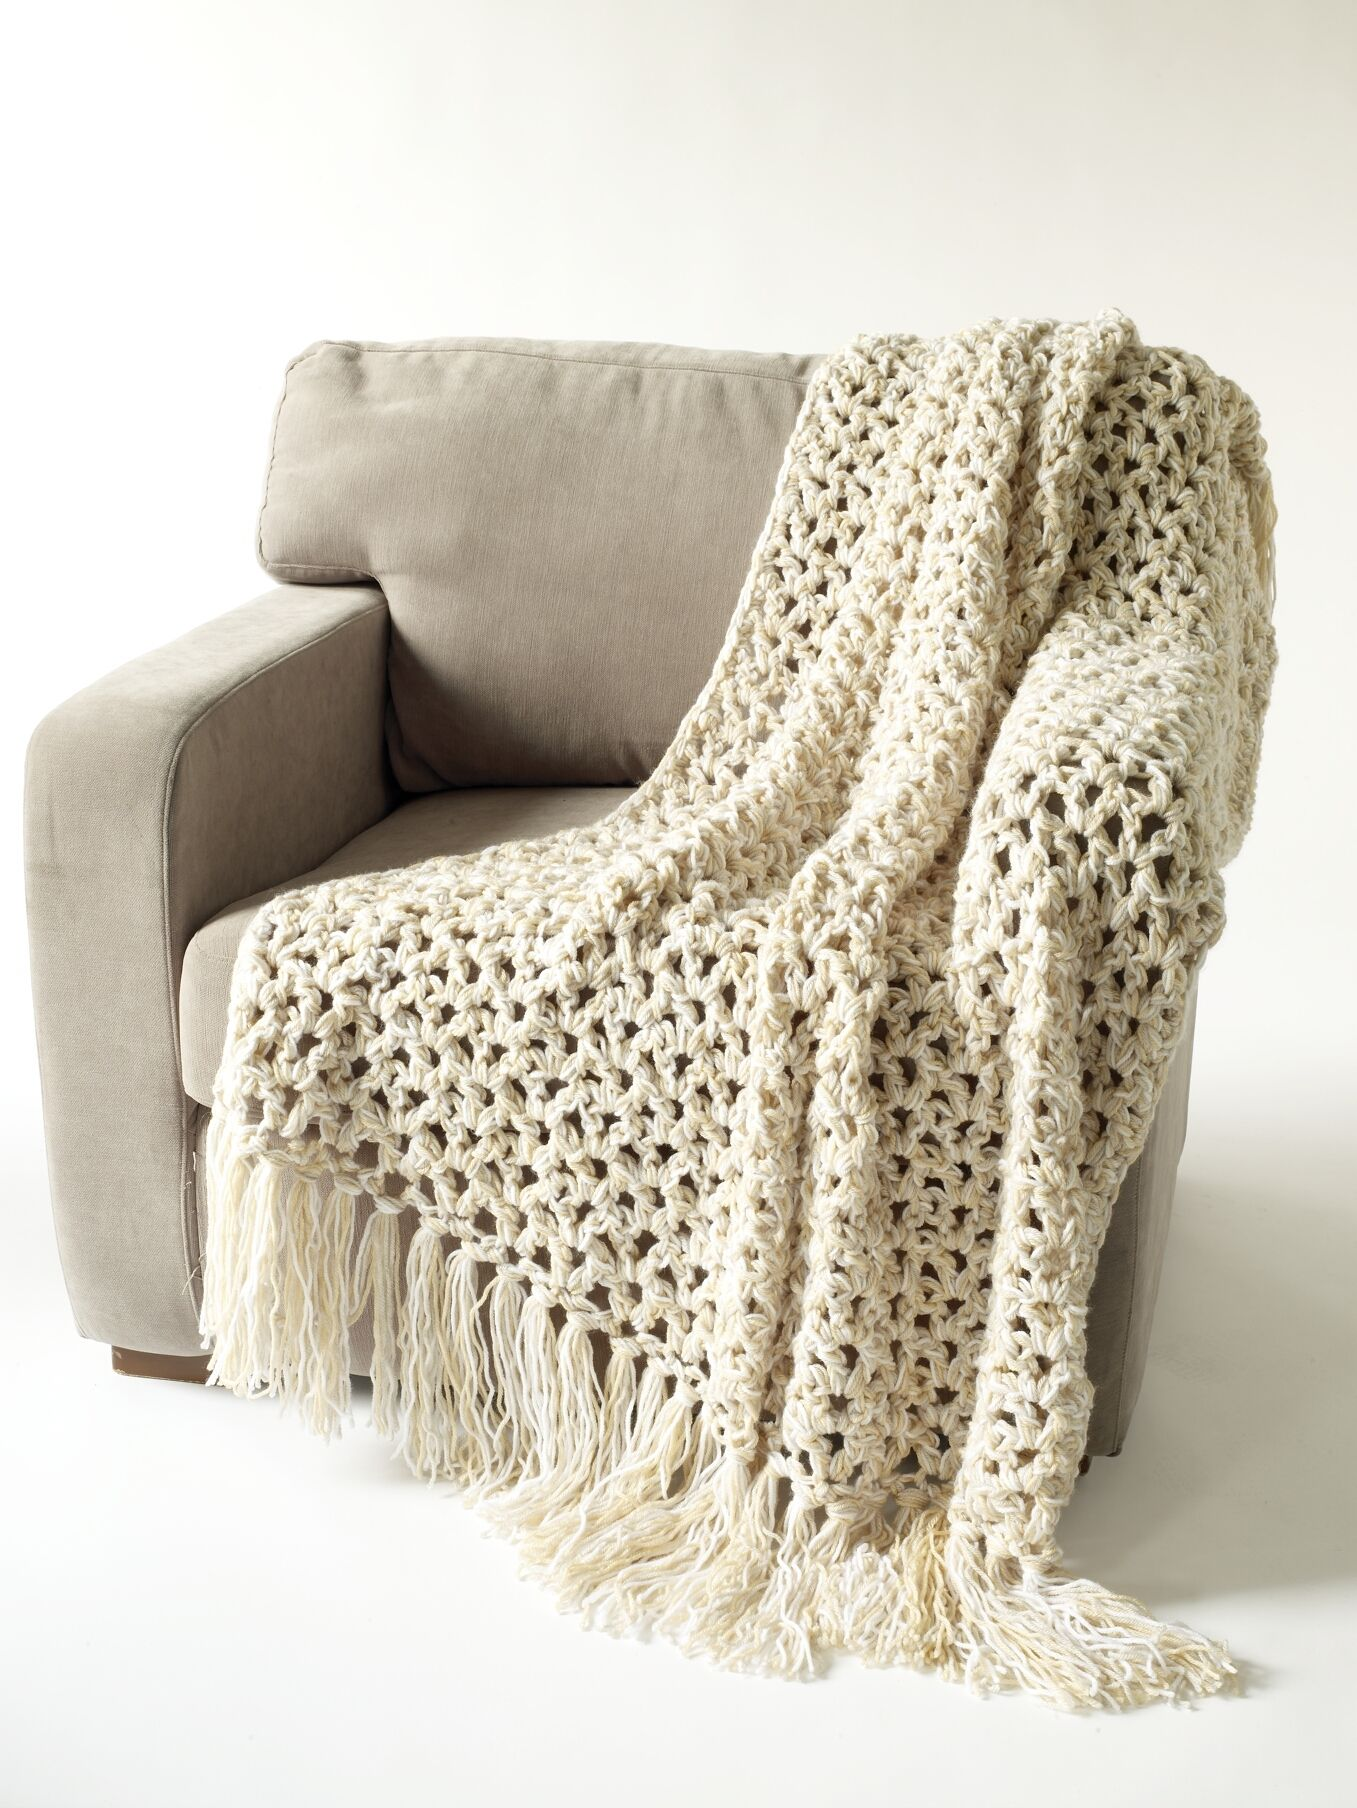 5 1/2 hour throw crochet pattern | Getting Crafty | Pinterest ...